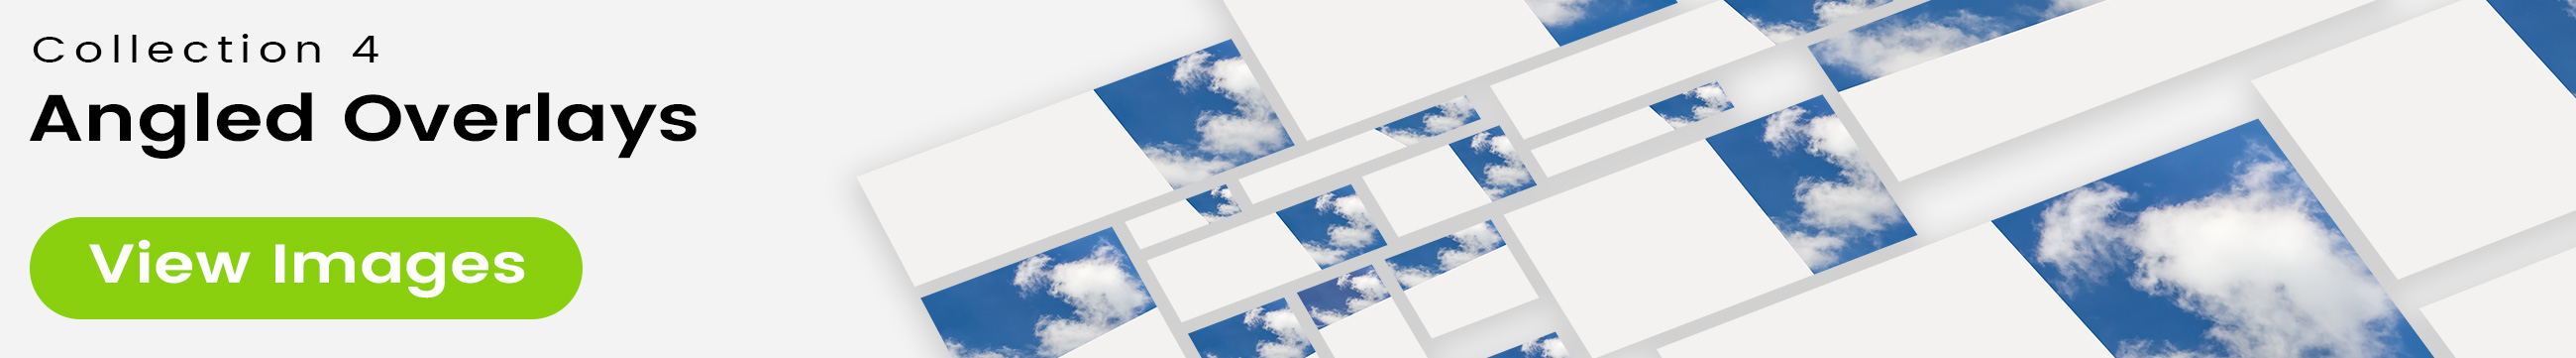 See 25 bonus images included with clouds stock image 9475. Collection 4 of 4 features an angled overlay design customized with a color that complements each photo.